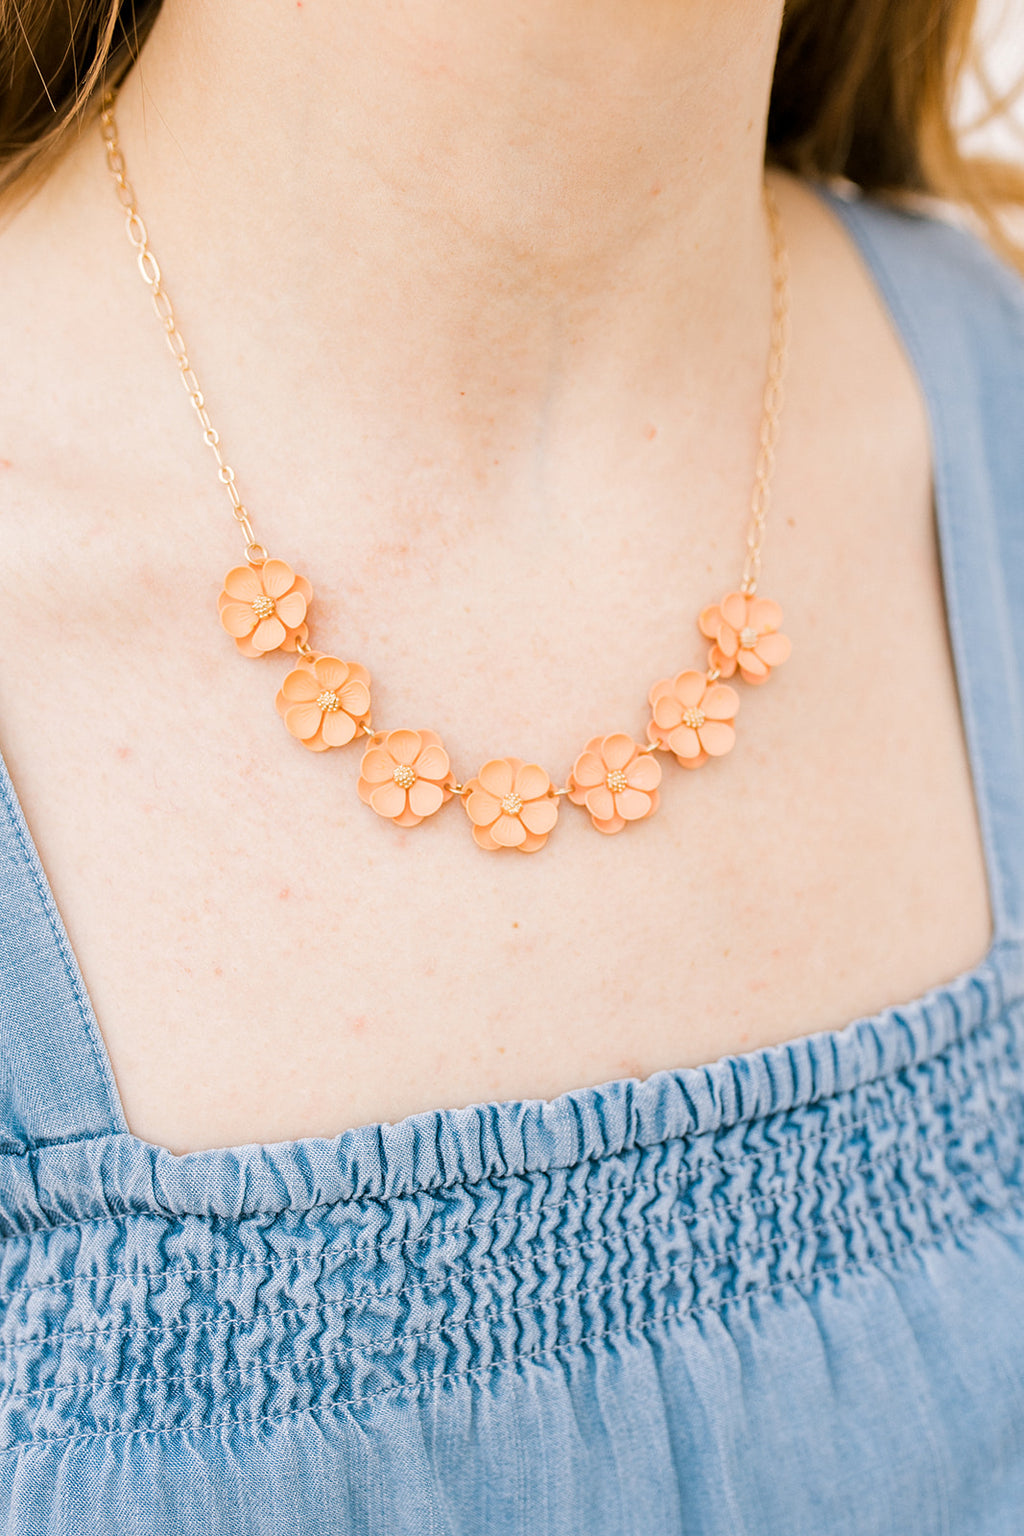 Peach Floral Necklace